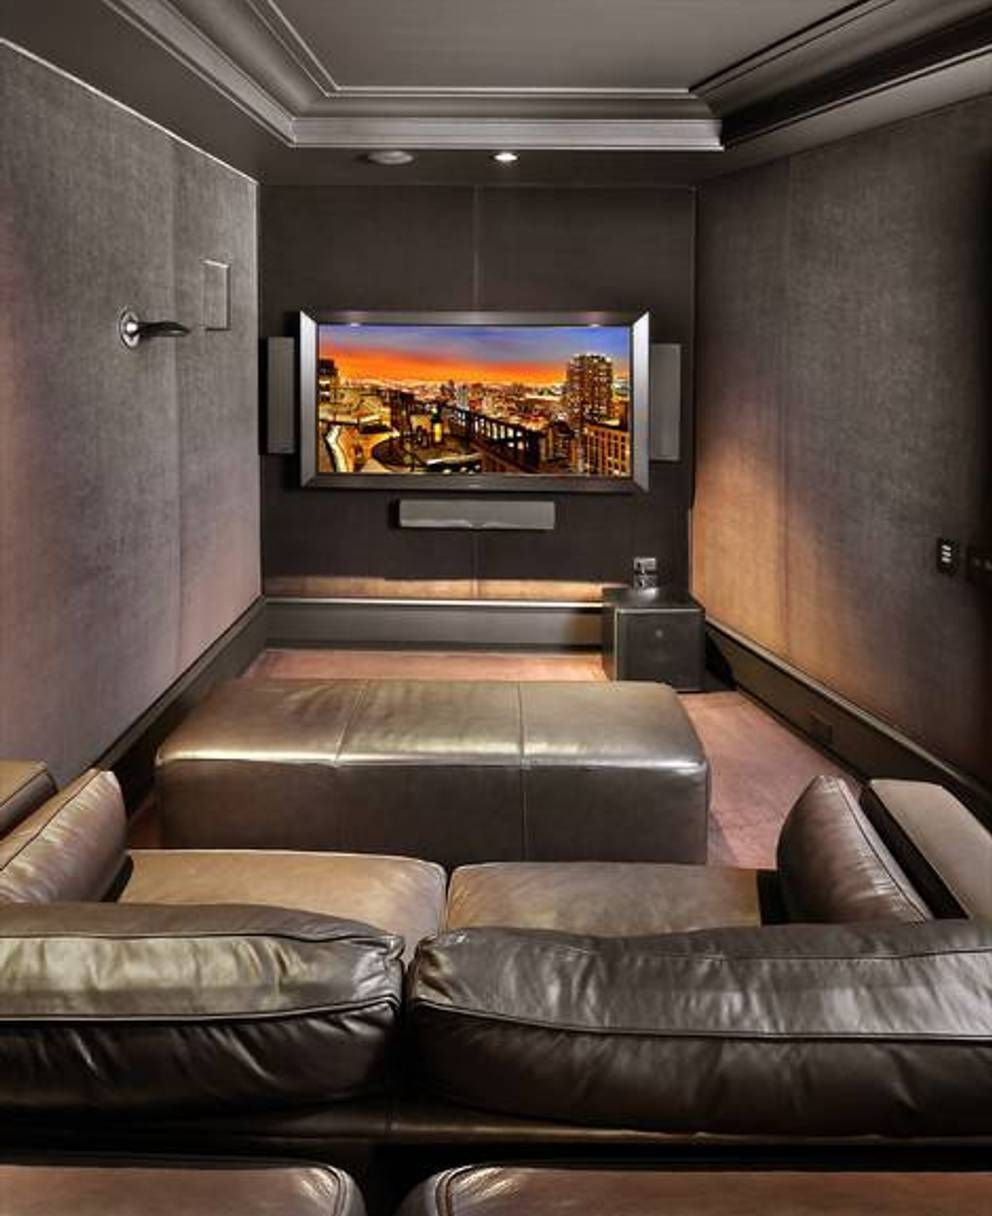 Home design and decor small home theater room ideas for Small room movie theater